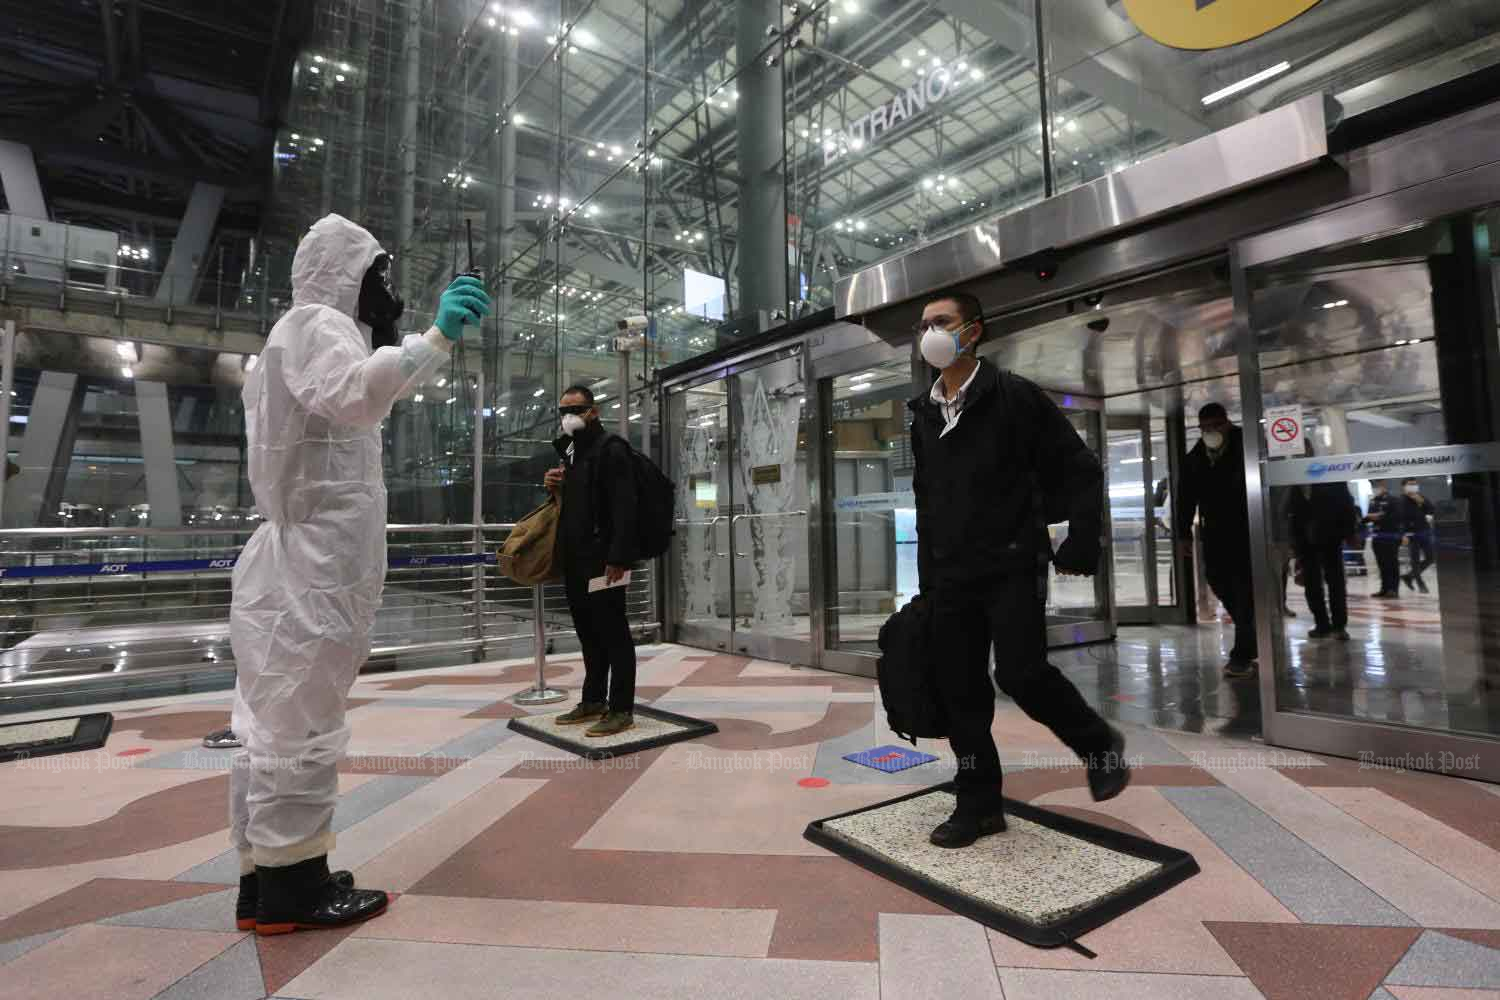 A healthcare worker thoroughly screen passengers upon arrival at Suvarnabhumi airport amid the Covid-19 pandemic. (Photo by Wichan Charoenkiatpakul)